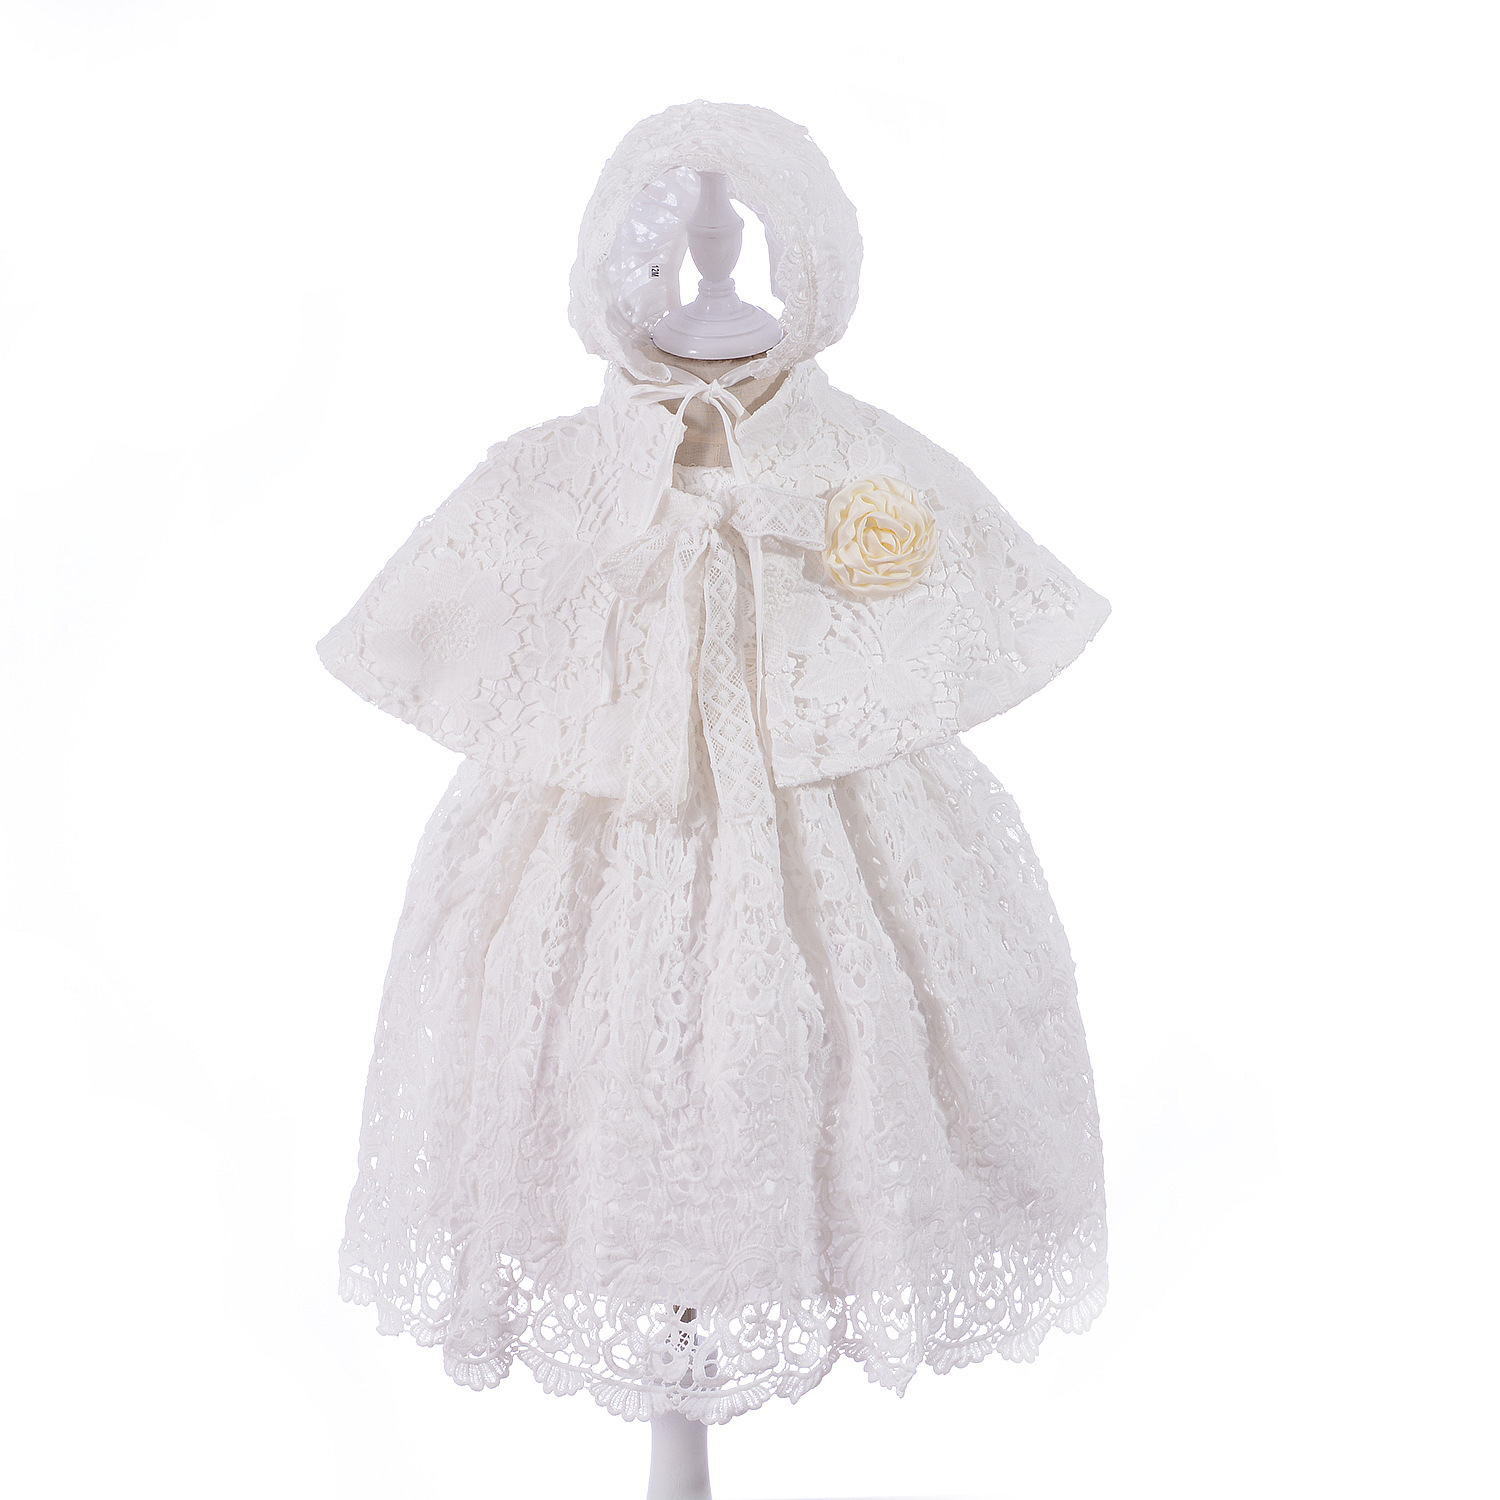 Brand 3pcs Baby Girls Dresses Cape Cardigan Baby Girl 1 Year Birthday Baptism Clothes Lace Christening Ball Gown RBF184002|Dresses| |  - title=